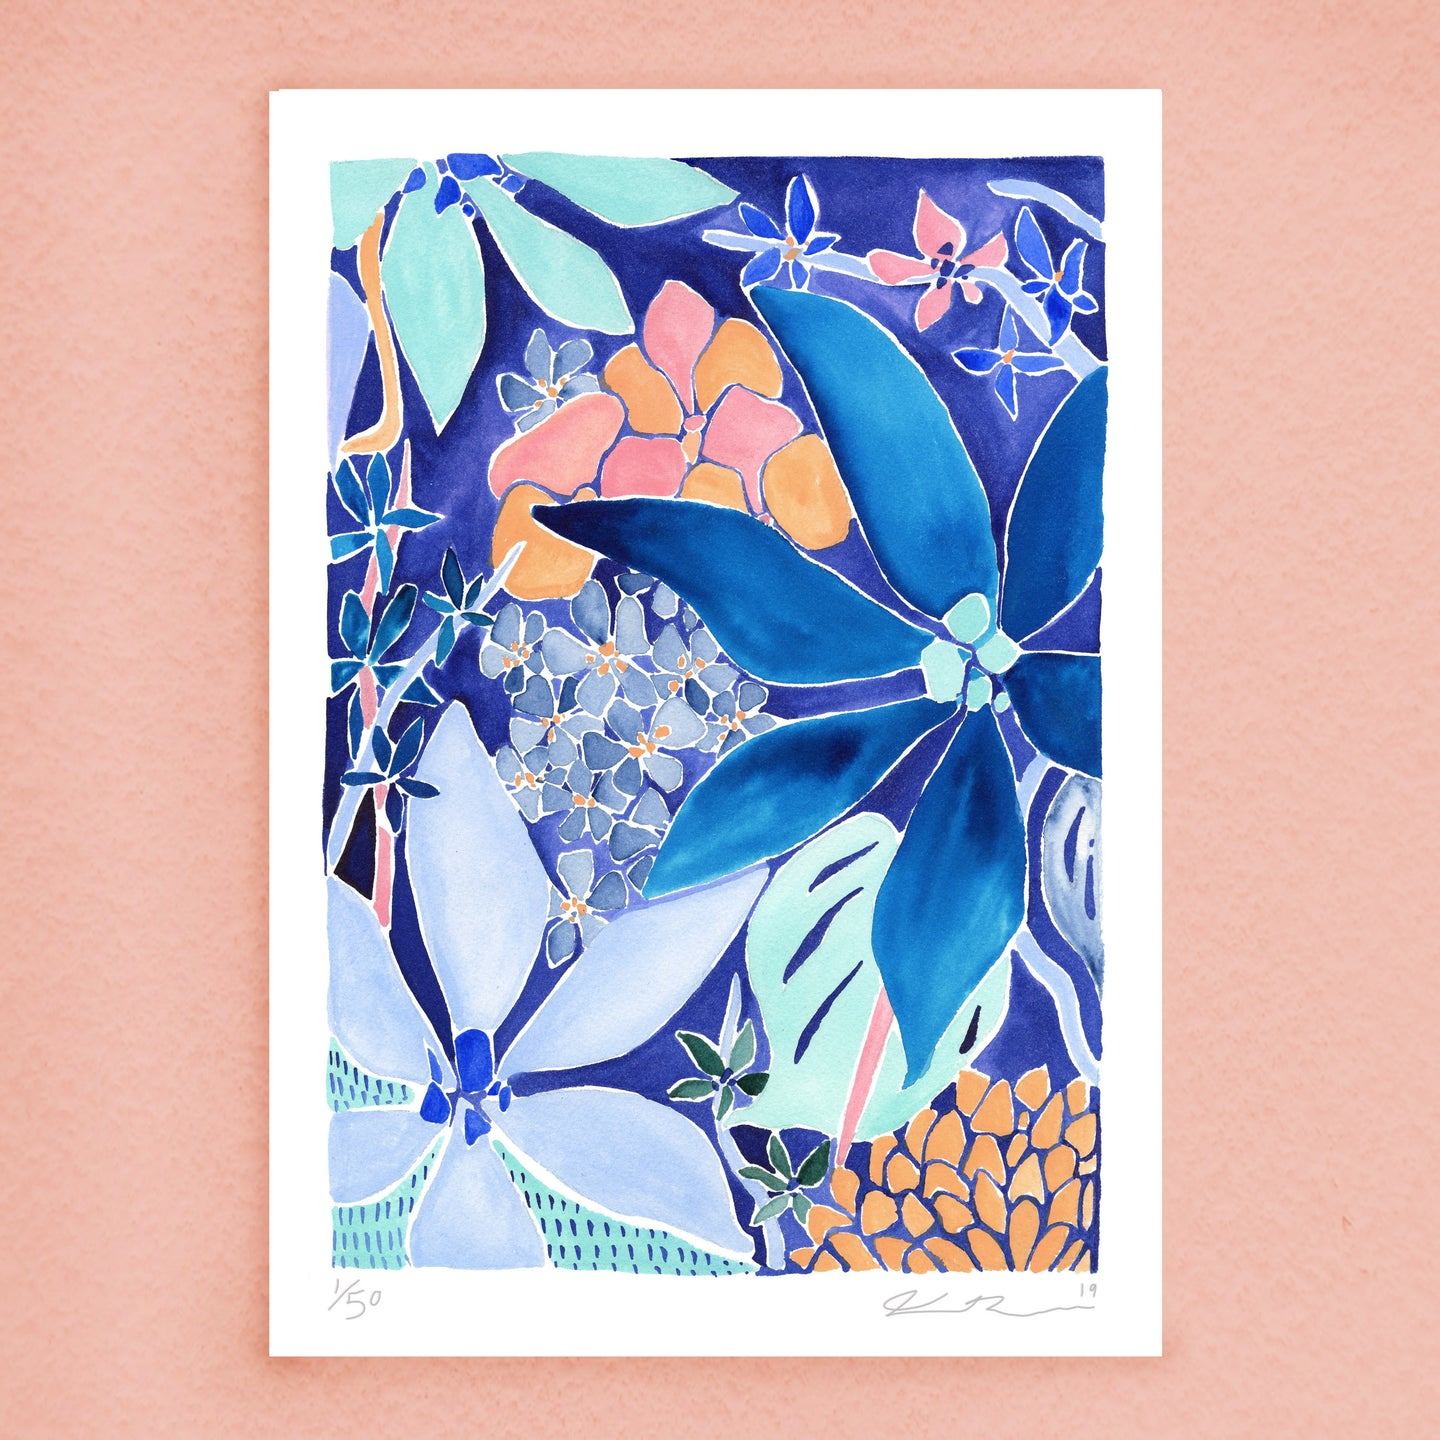 Flower Power Print (Limited edition)